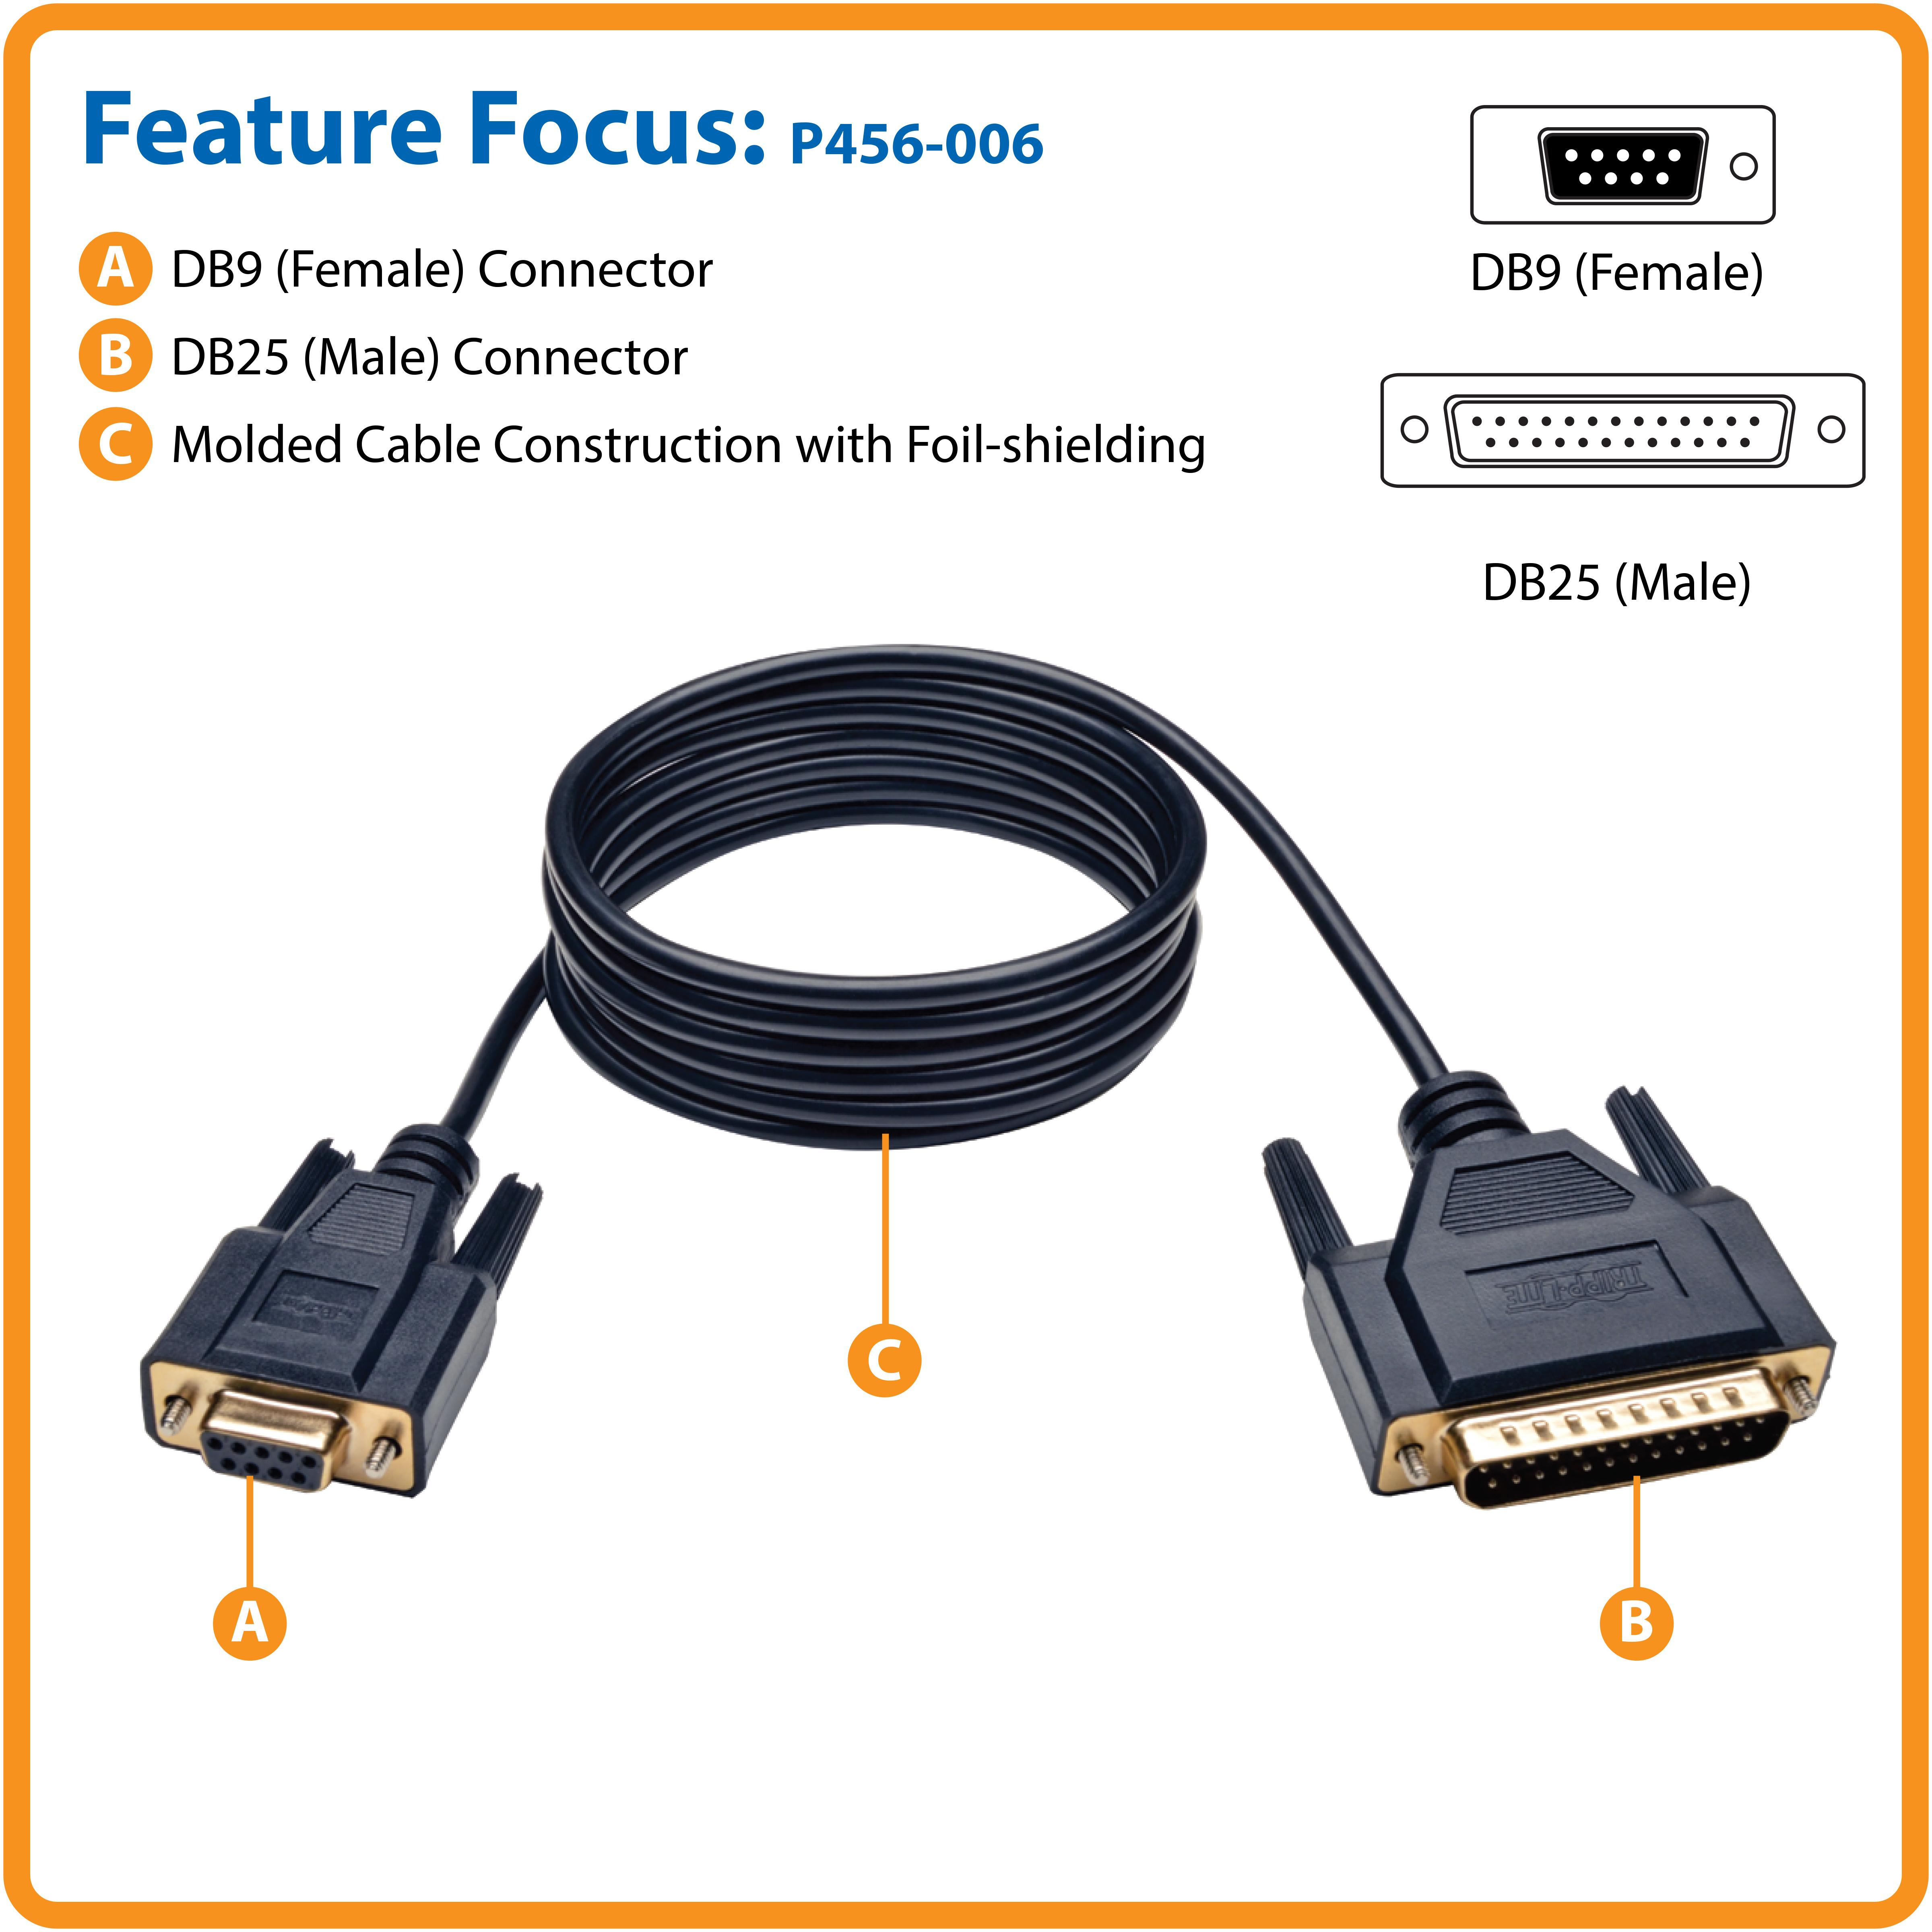 6Ft DB9 FEMALE to DB9 FEMALE NULL MODEM Cable